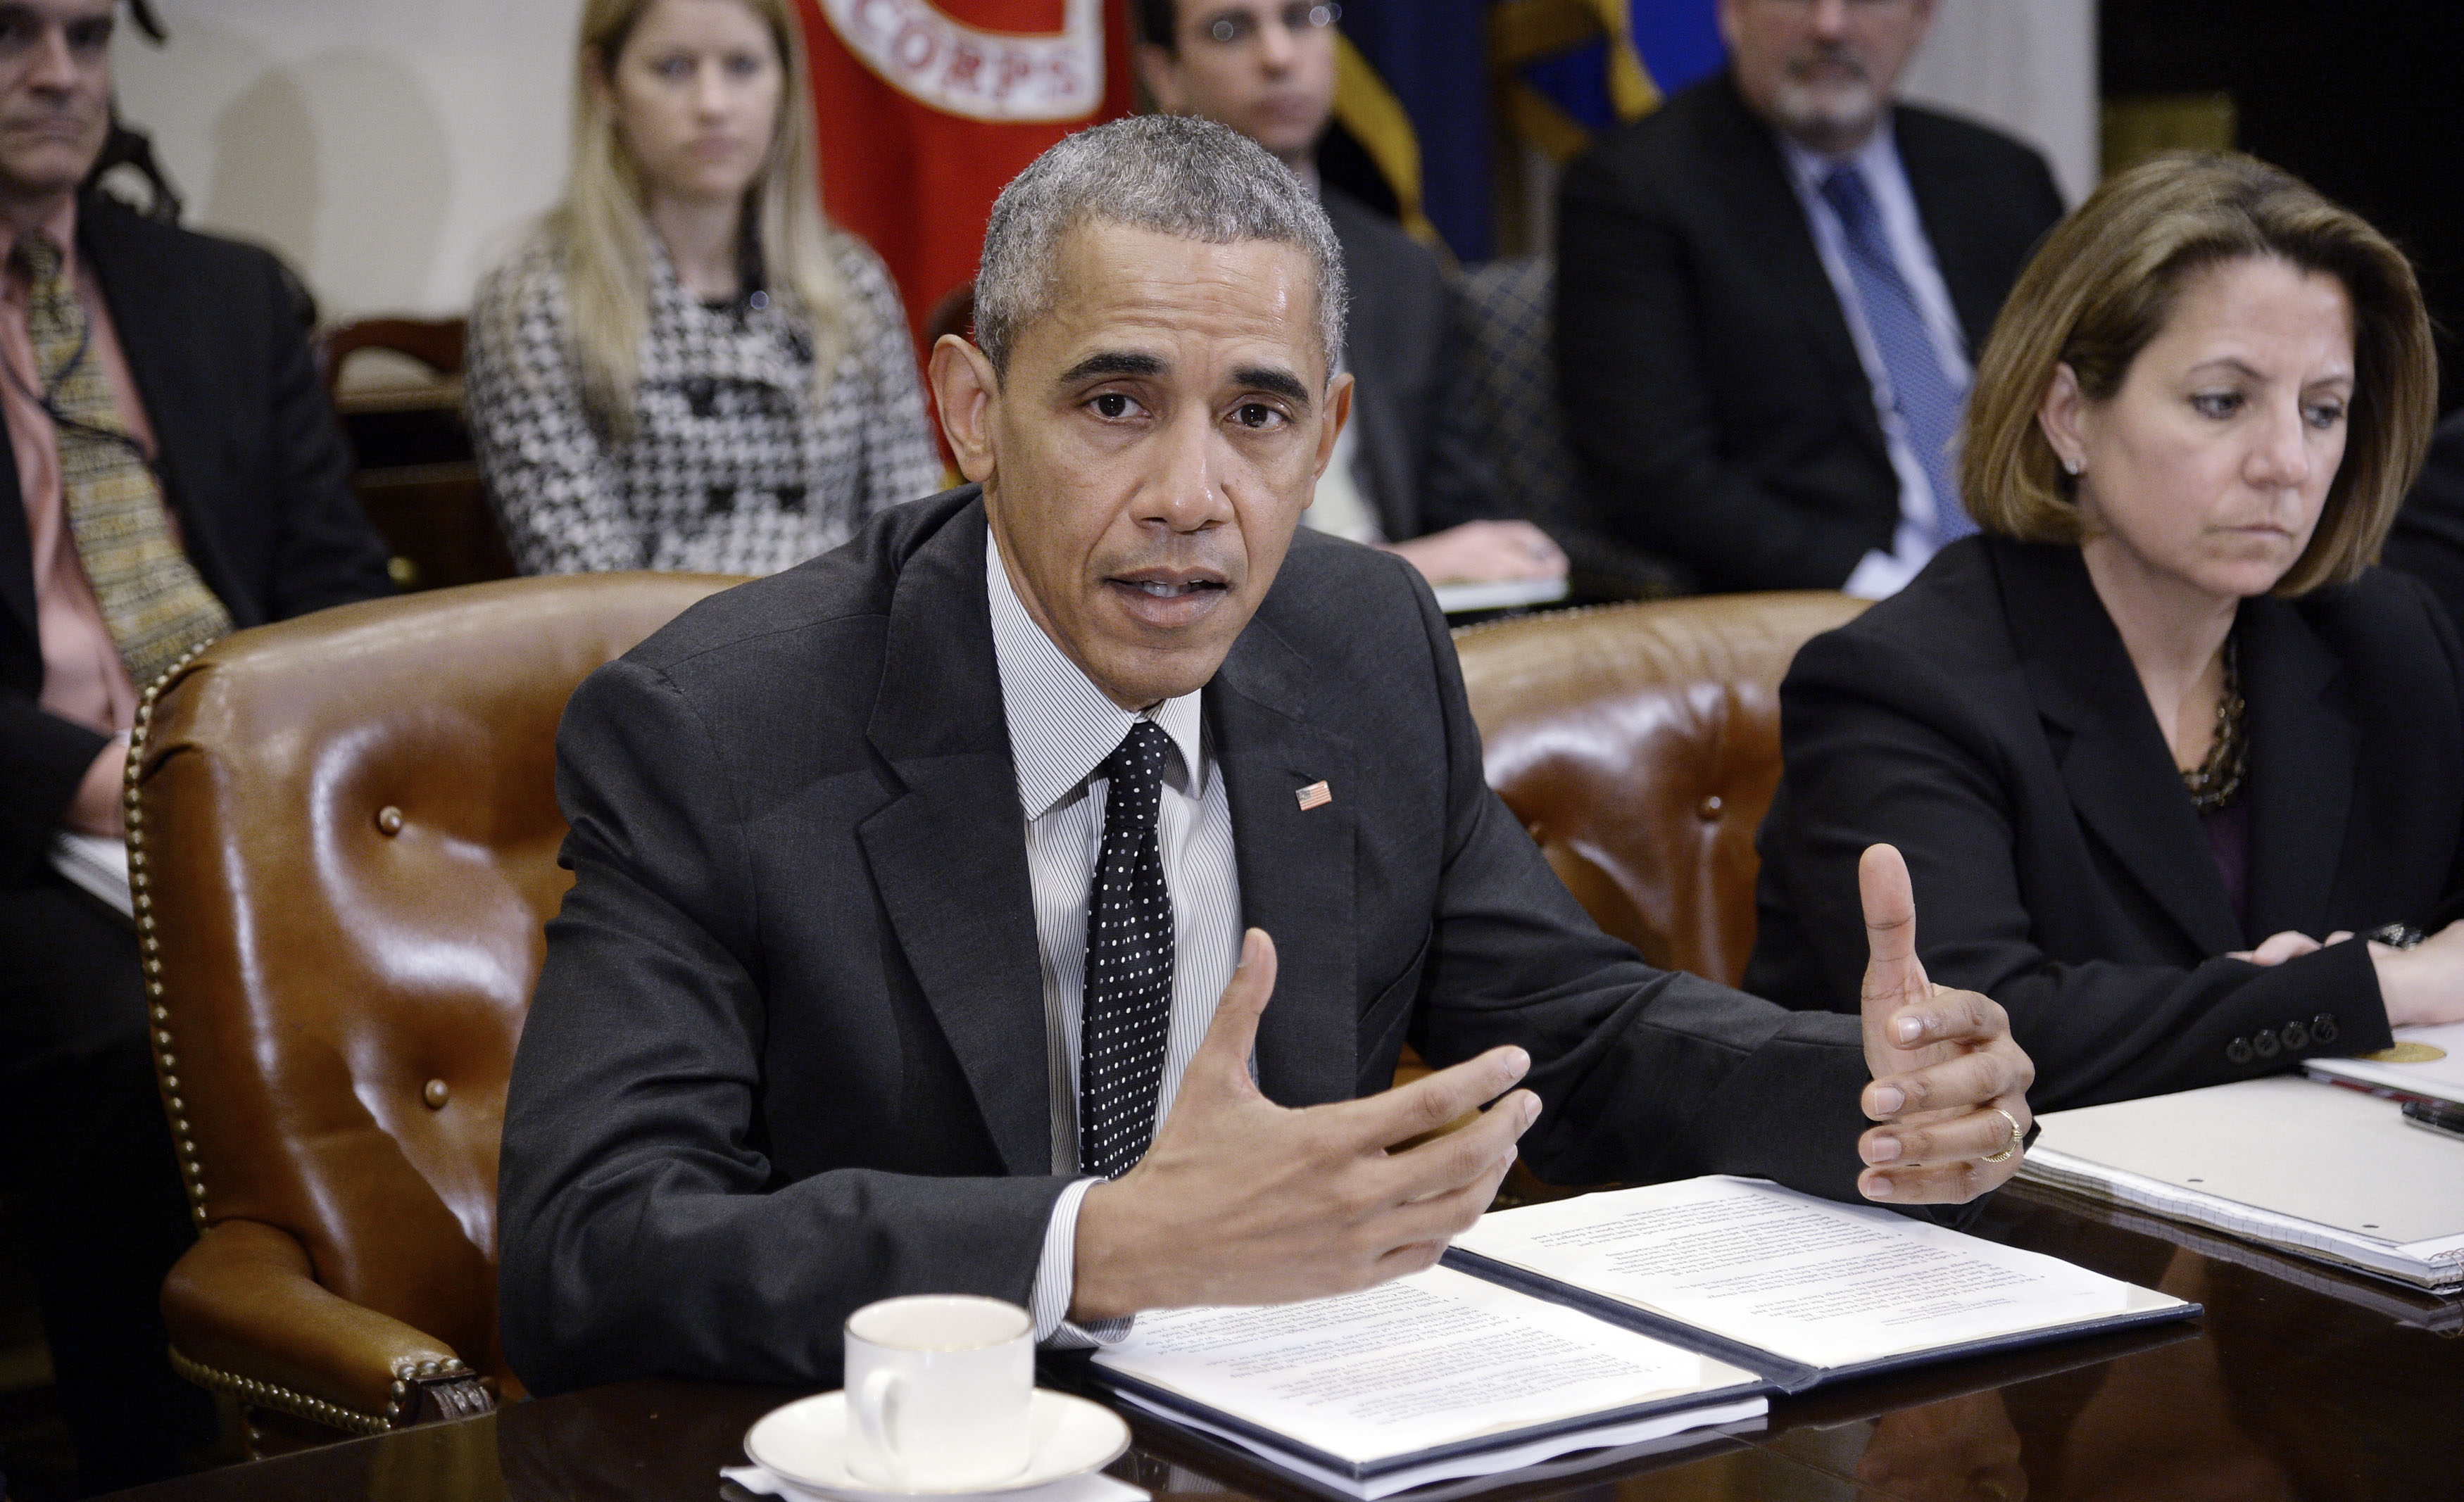 <p>US President Barack Obama speaks during a meeting with members of his national security team and cybersecurity advisors in the Roosevelt Room of the White House February 9, 2016. The President and his team discussed new actions to enhance the nation's cybersecurity, including measures that outlined in the President's FY2017 Budget proposal.</p>